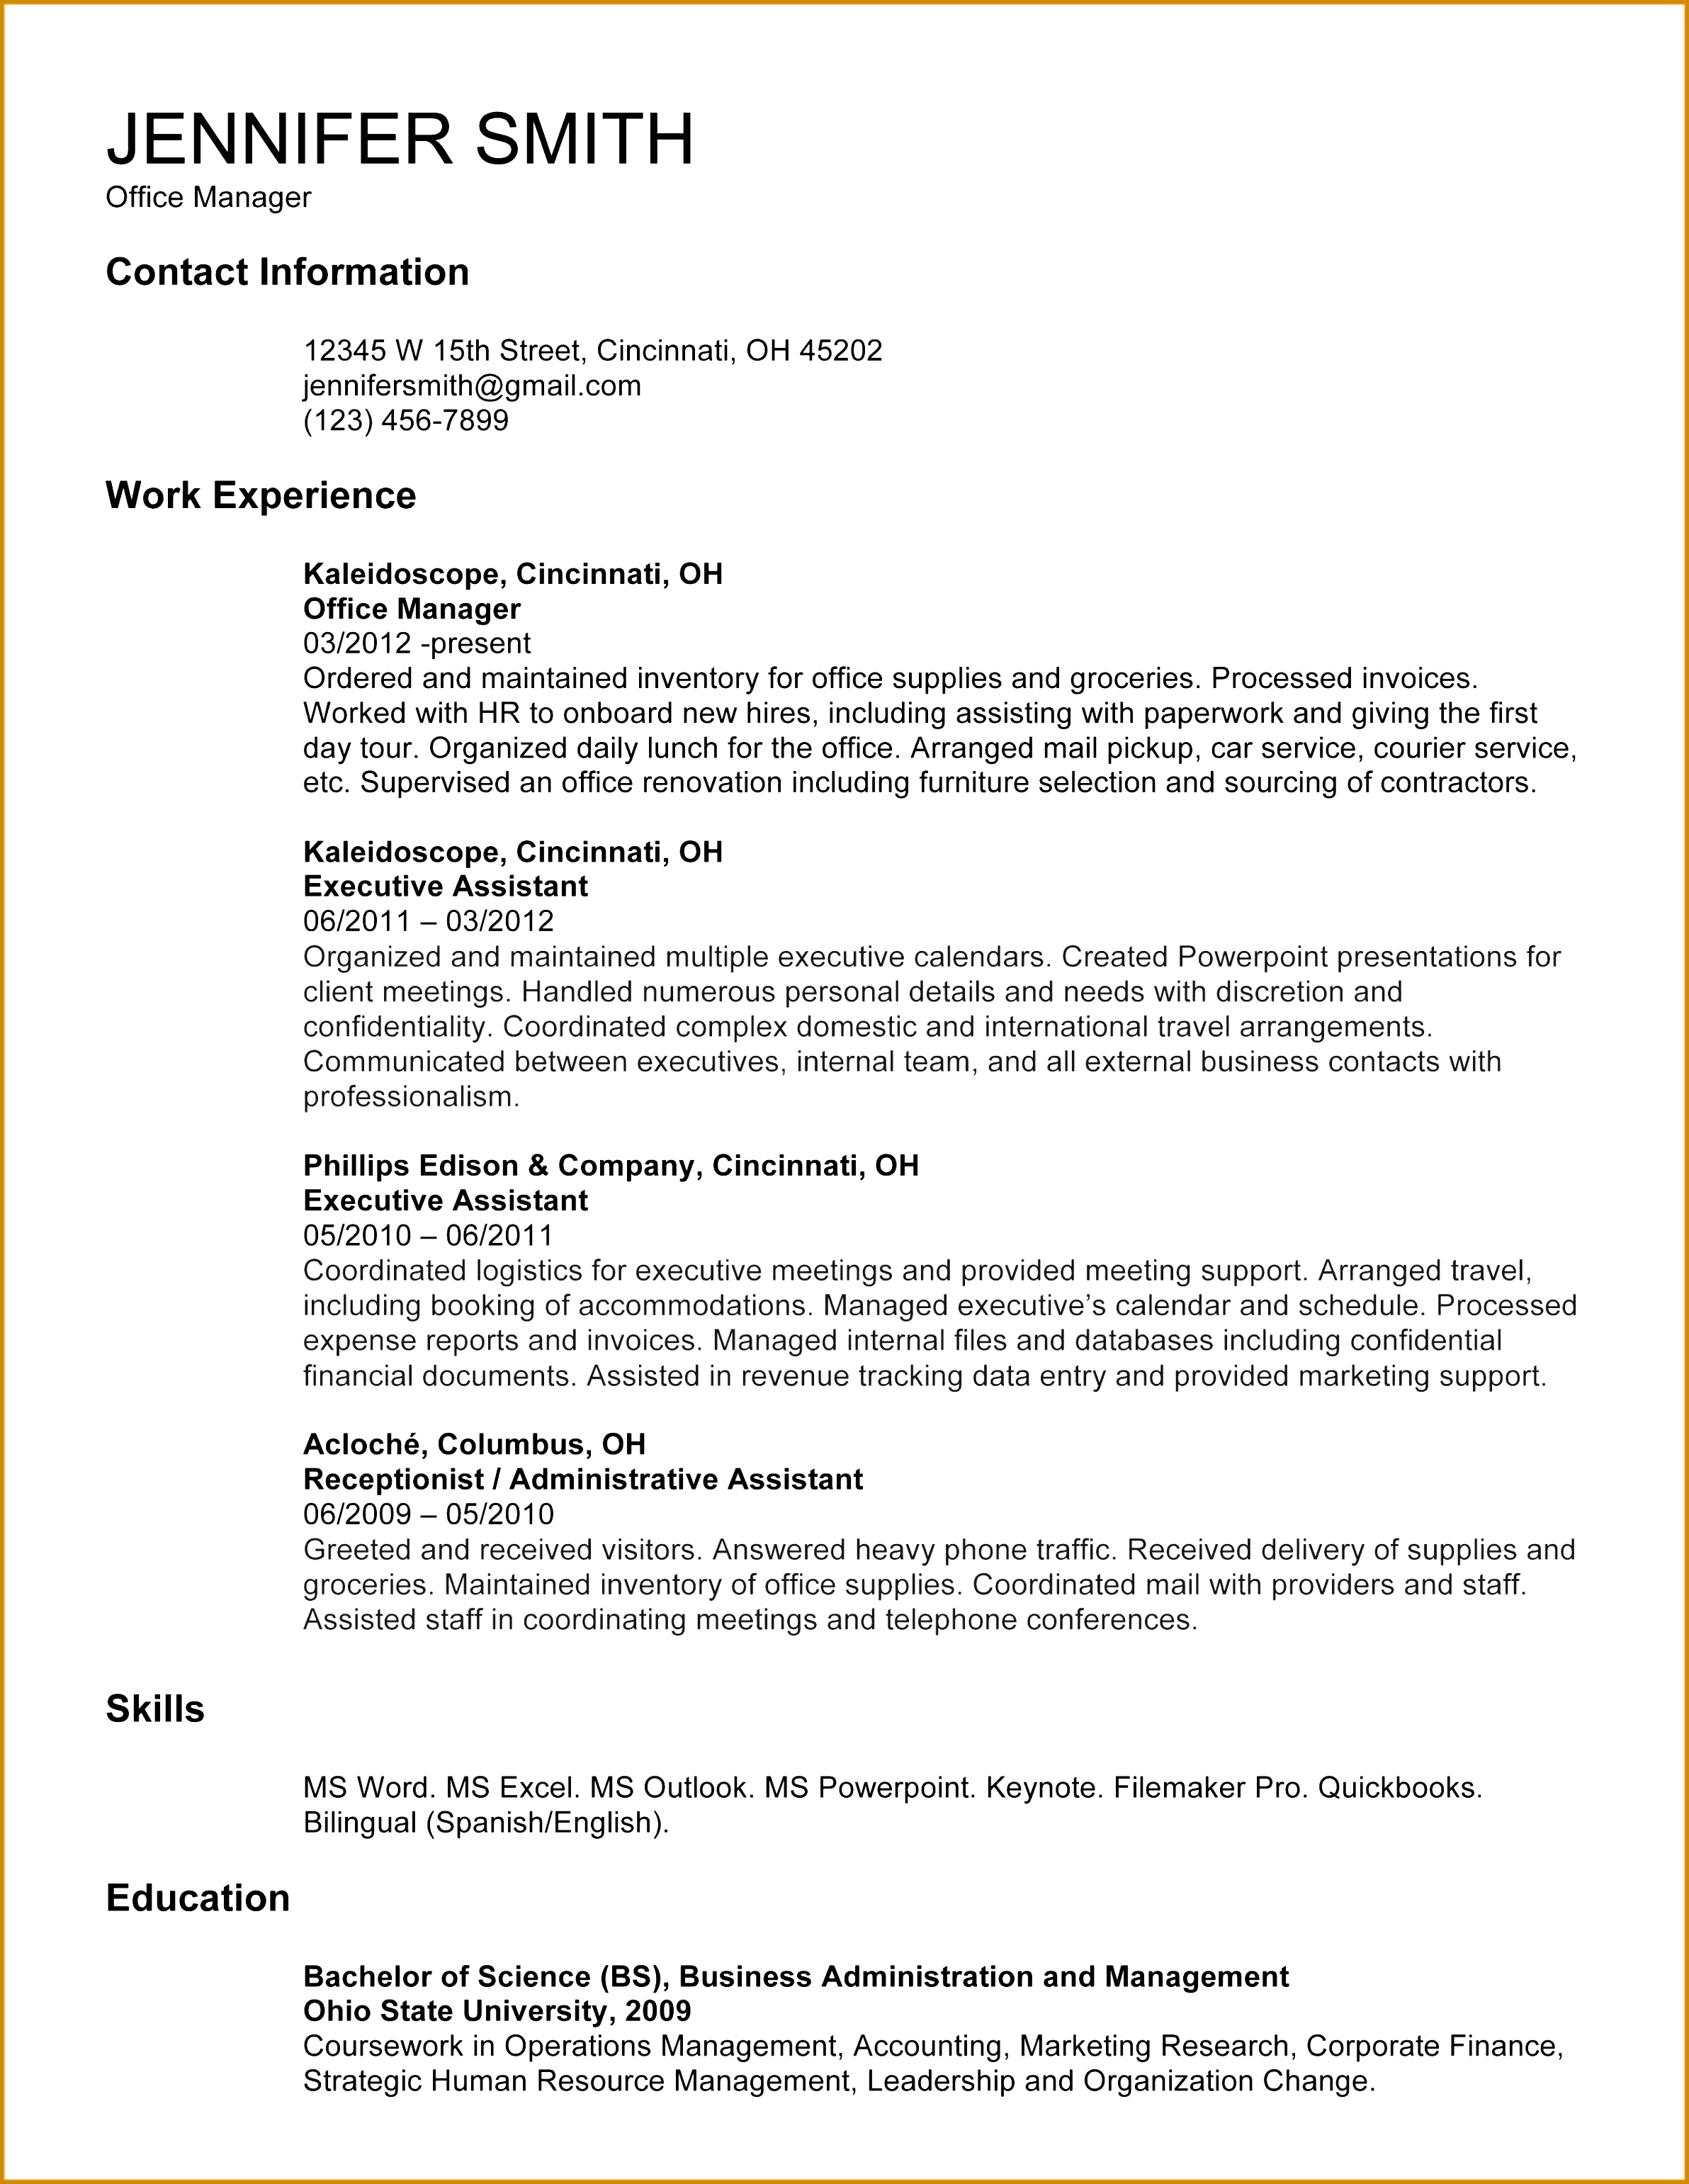 Examples Cover Letter for Resume Beautiful Administrative assistant Resume Template Od Specialist Cover Letter 30822384